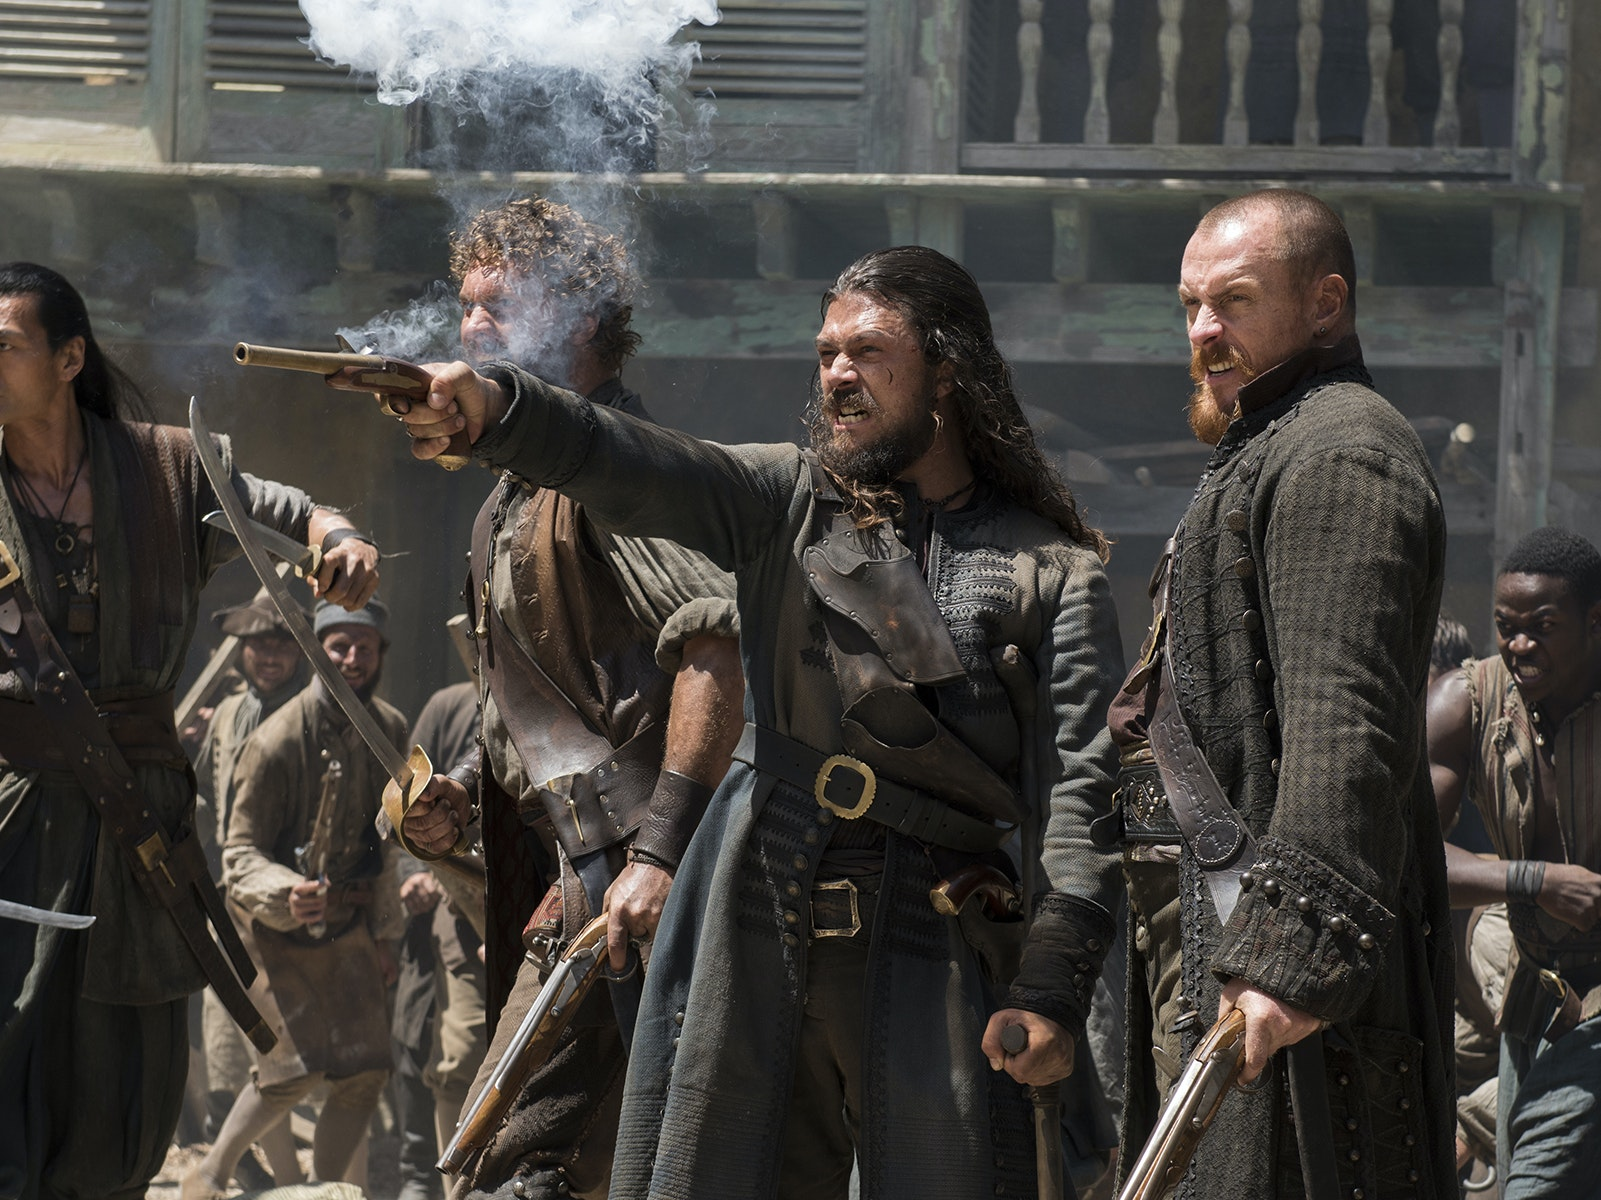 5 Things to Note in the 'Black Sails' Season 4 Trailer